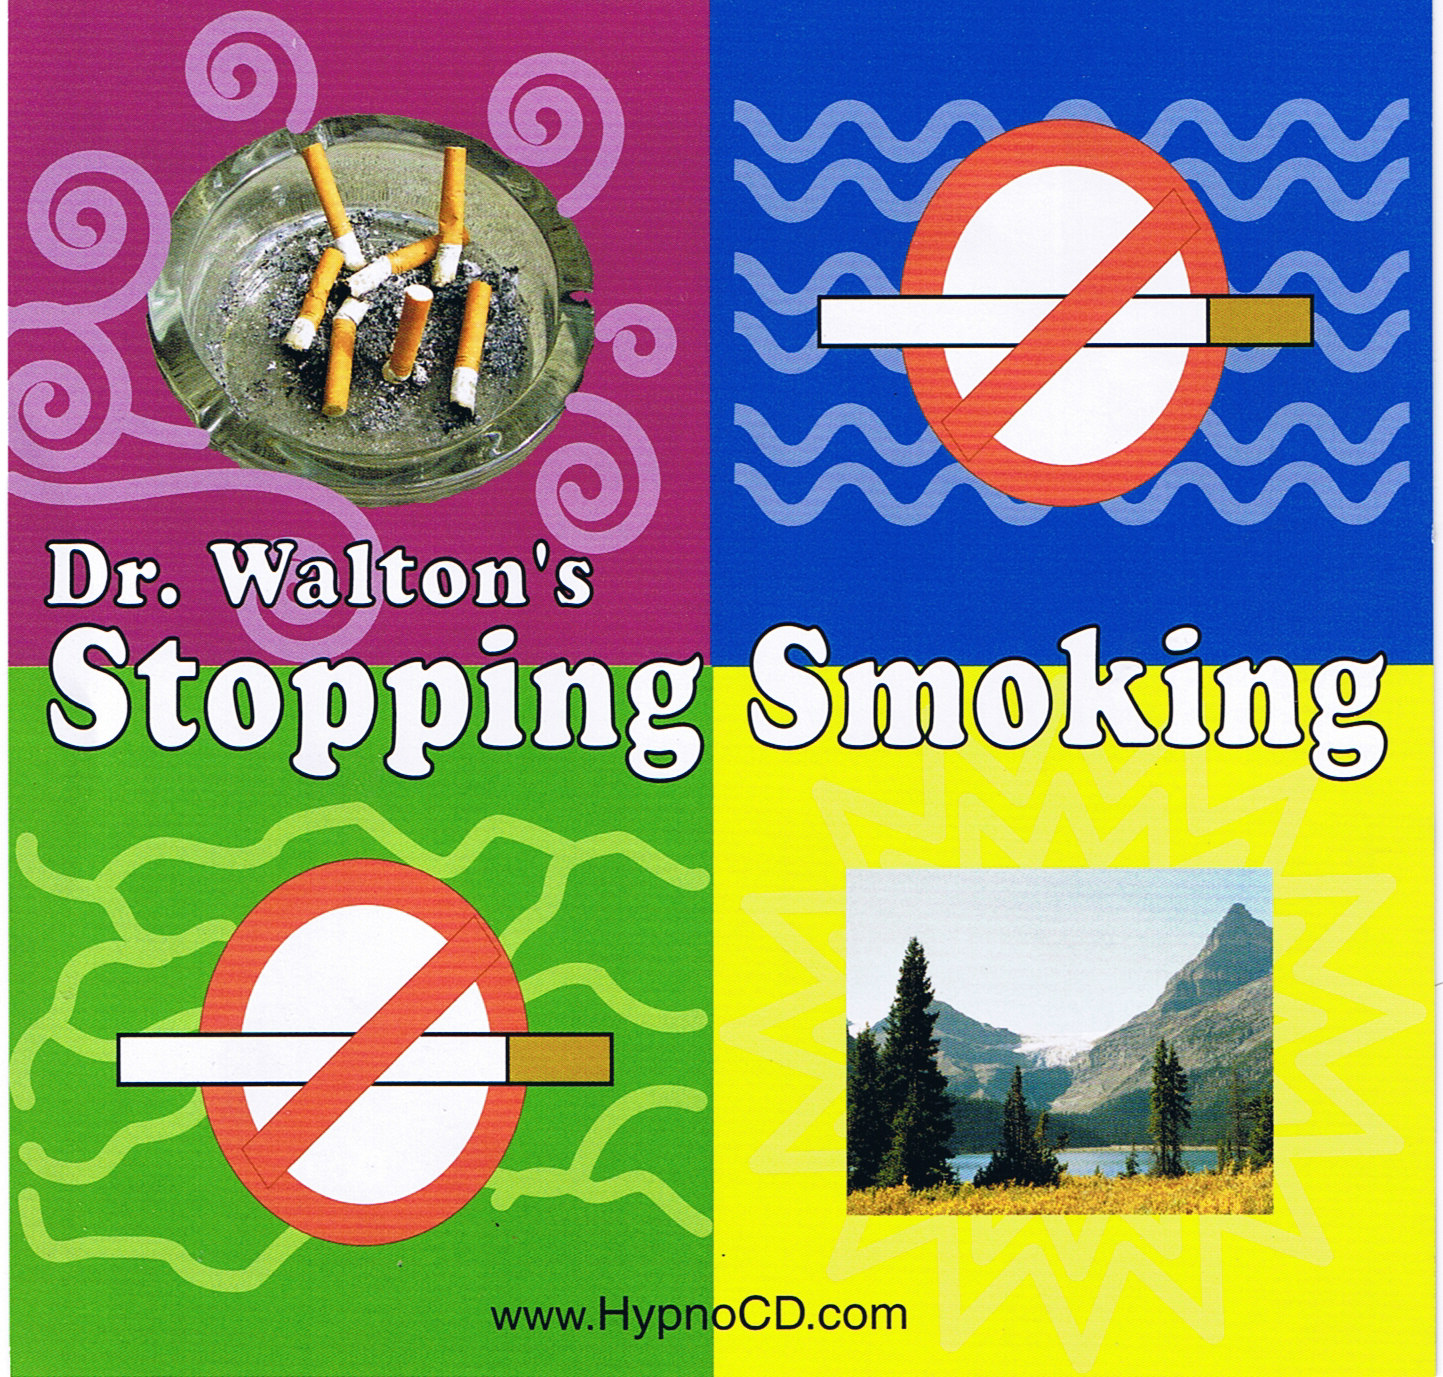 Dr. Walton's Stopping Smoking [DD]